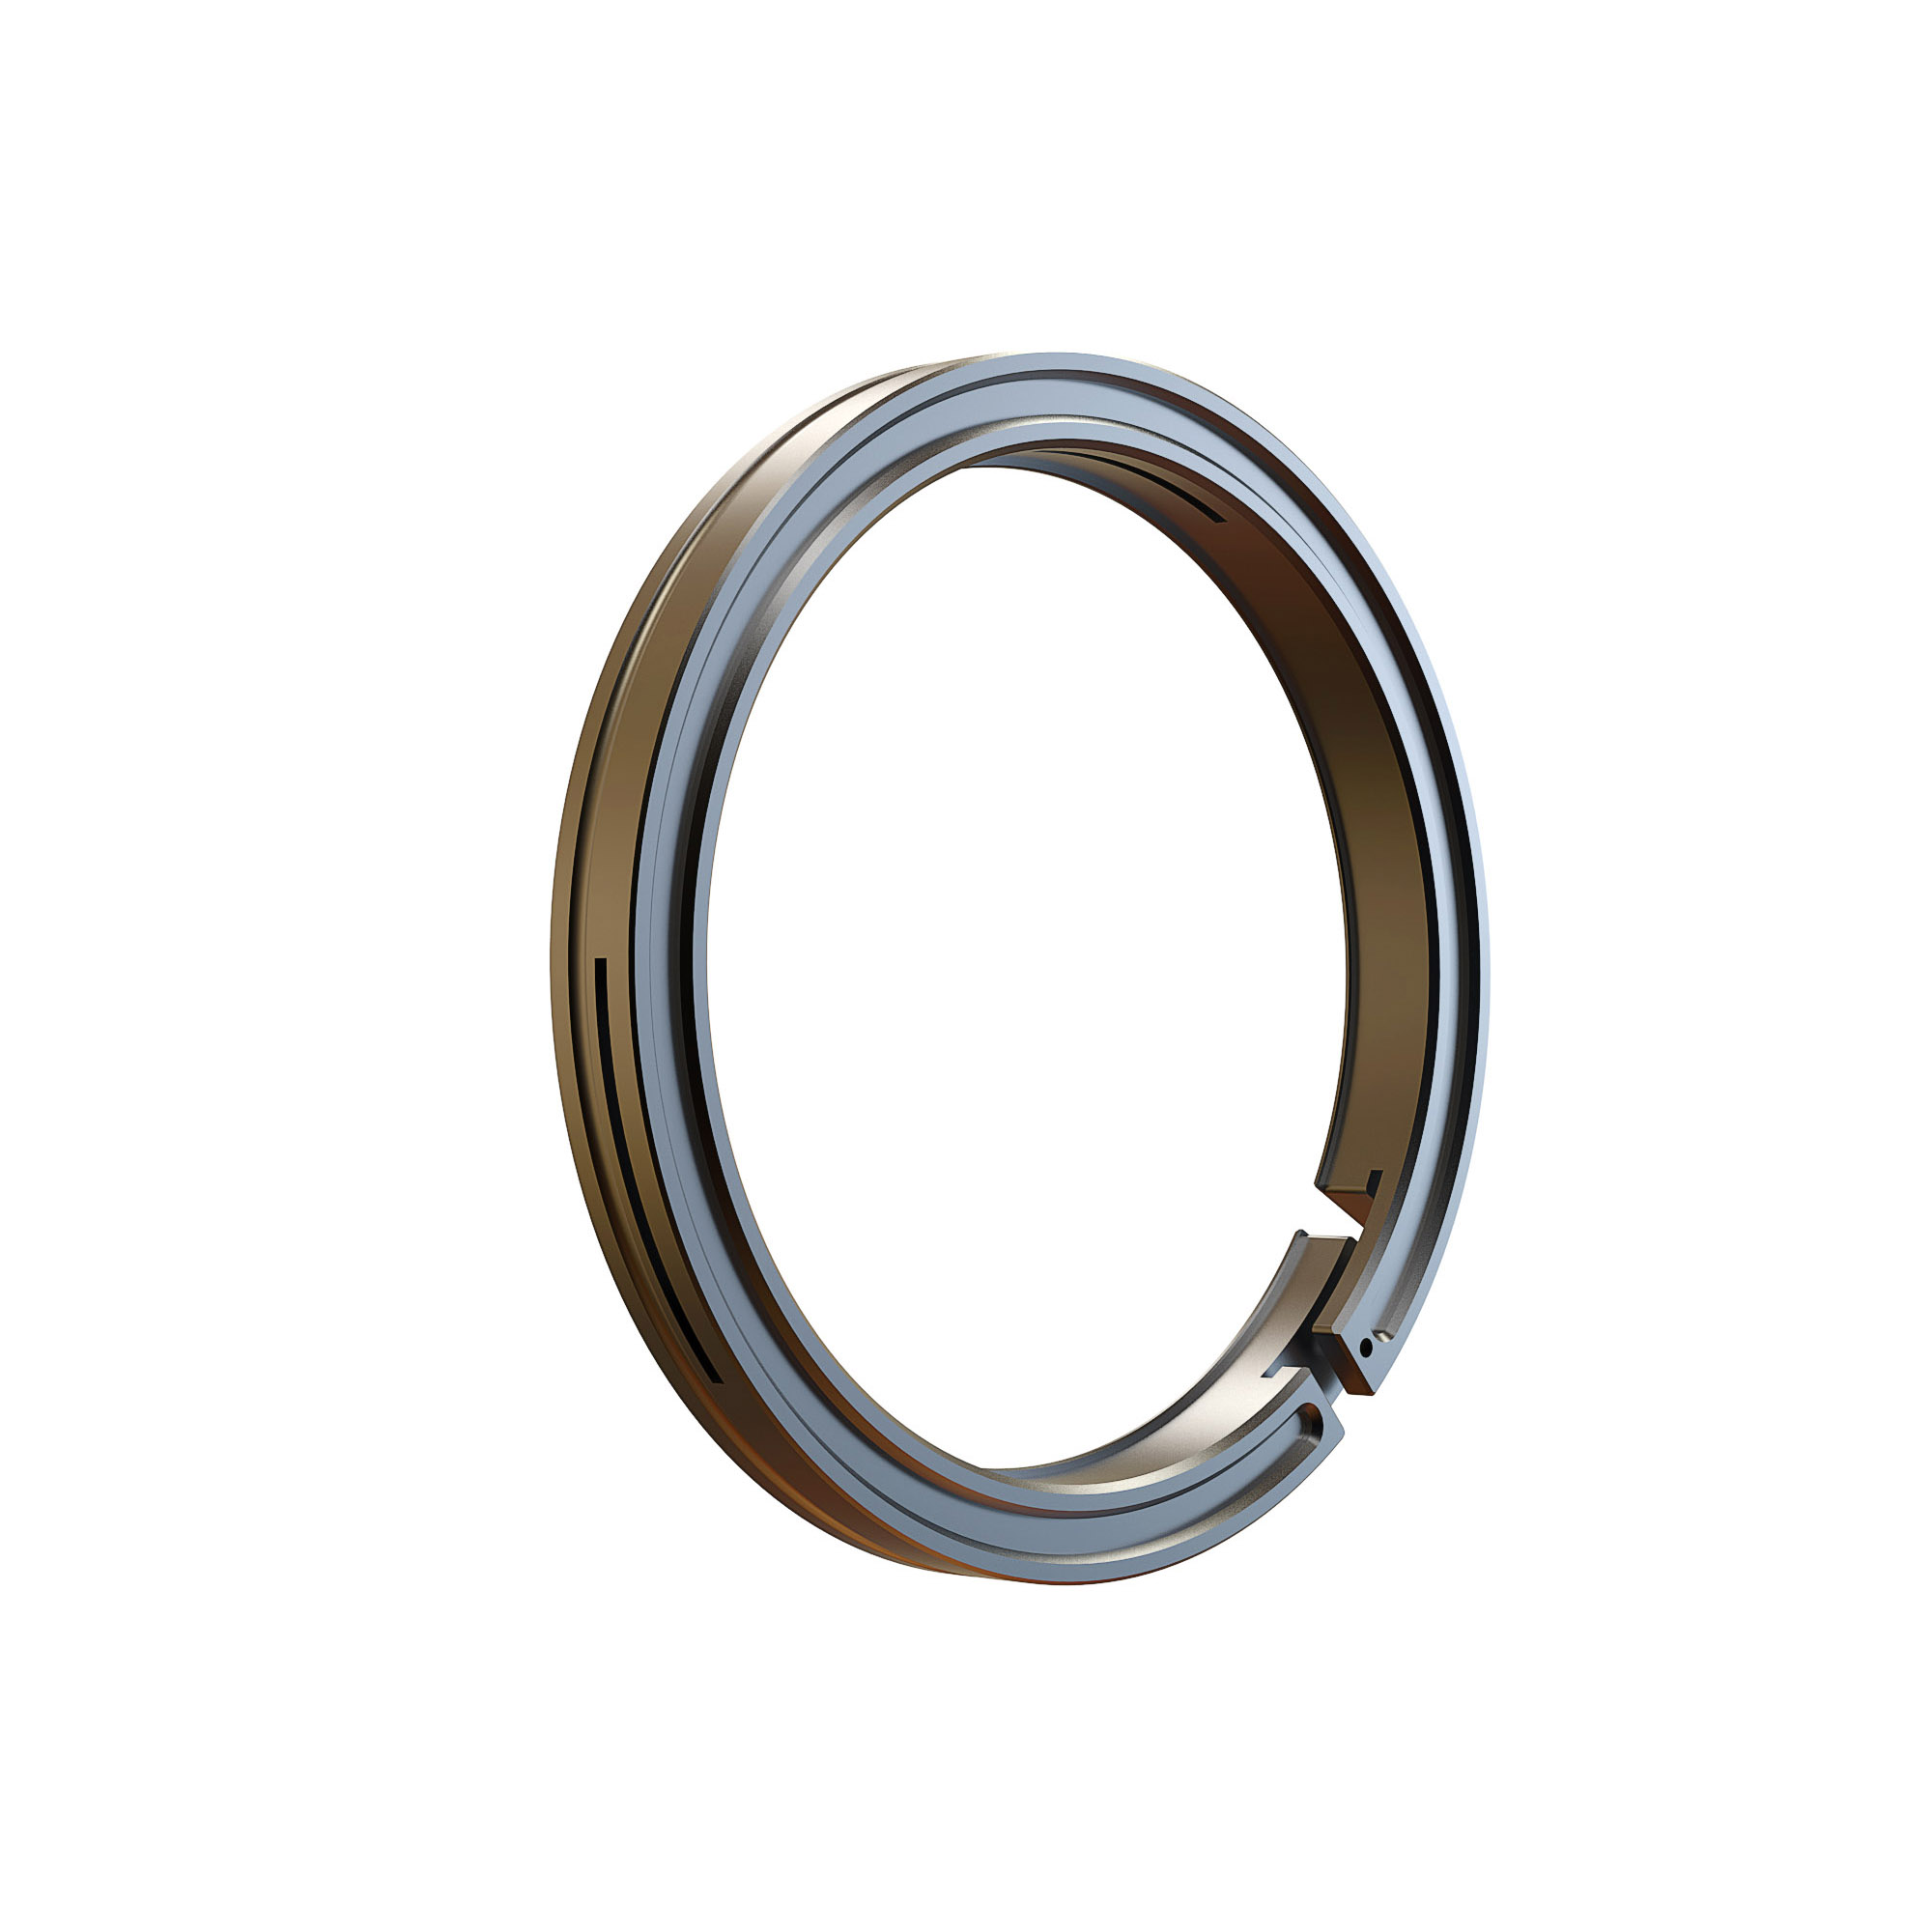 B1250 1044 143 120 Clamp on Ring 1